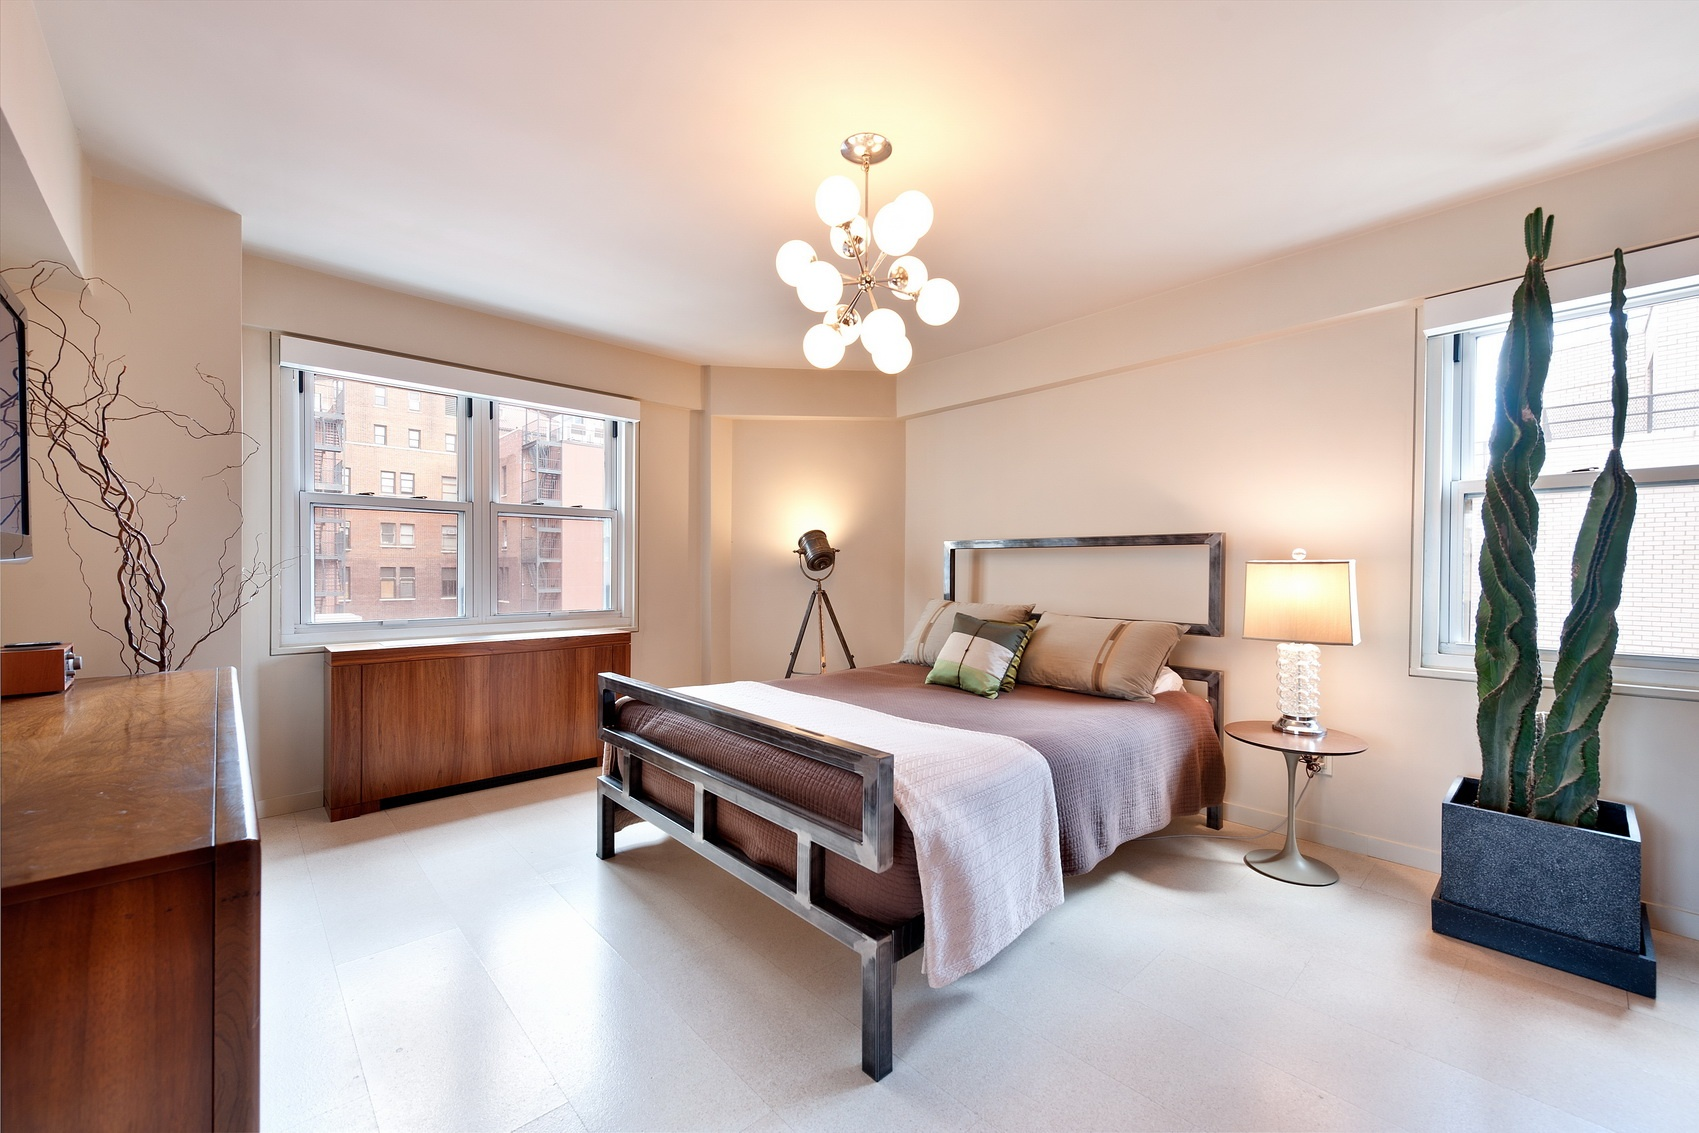 The Fabulous Beekman Boys' Fabulous Upper East Side Penthouse 1 BR